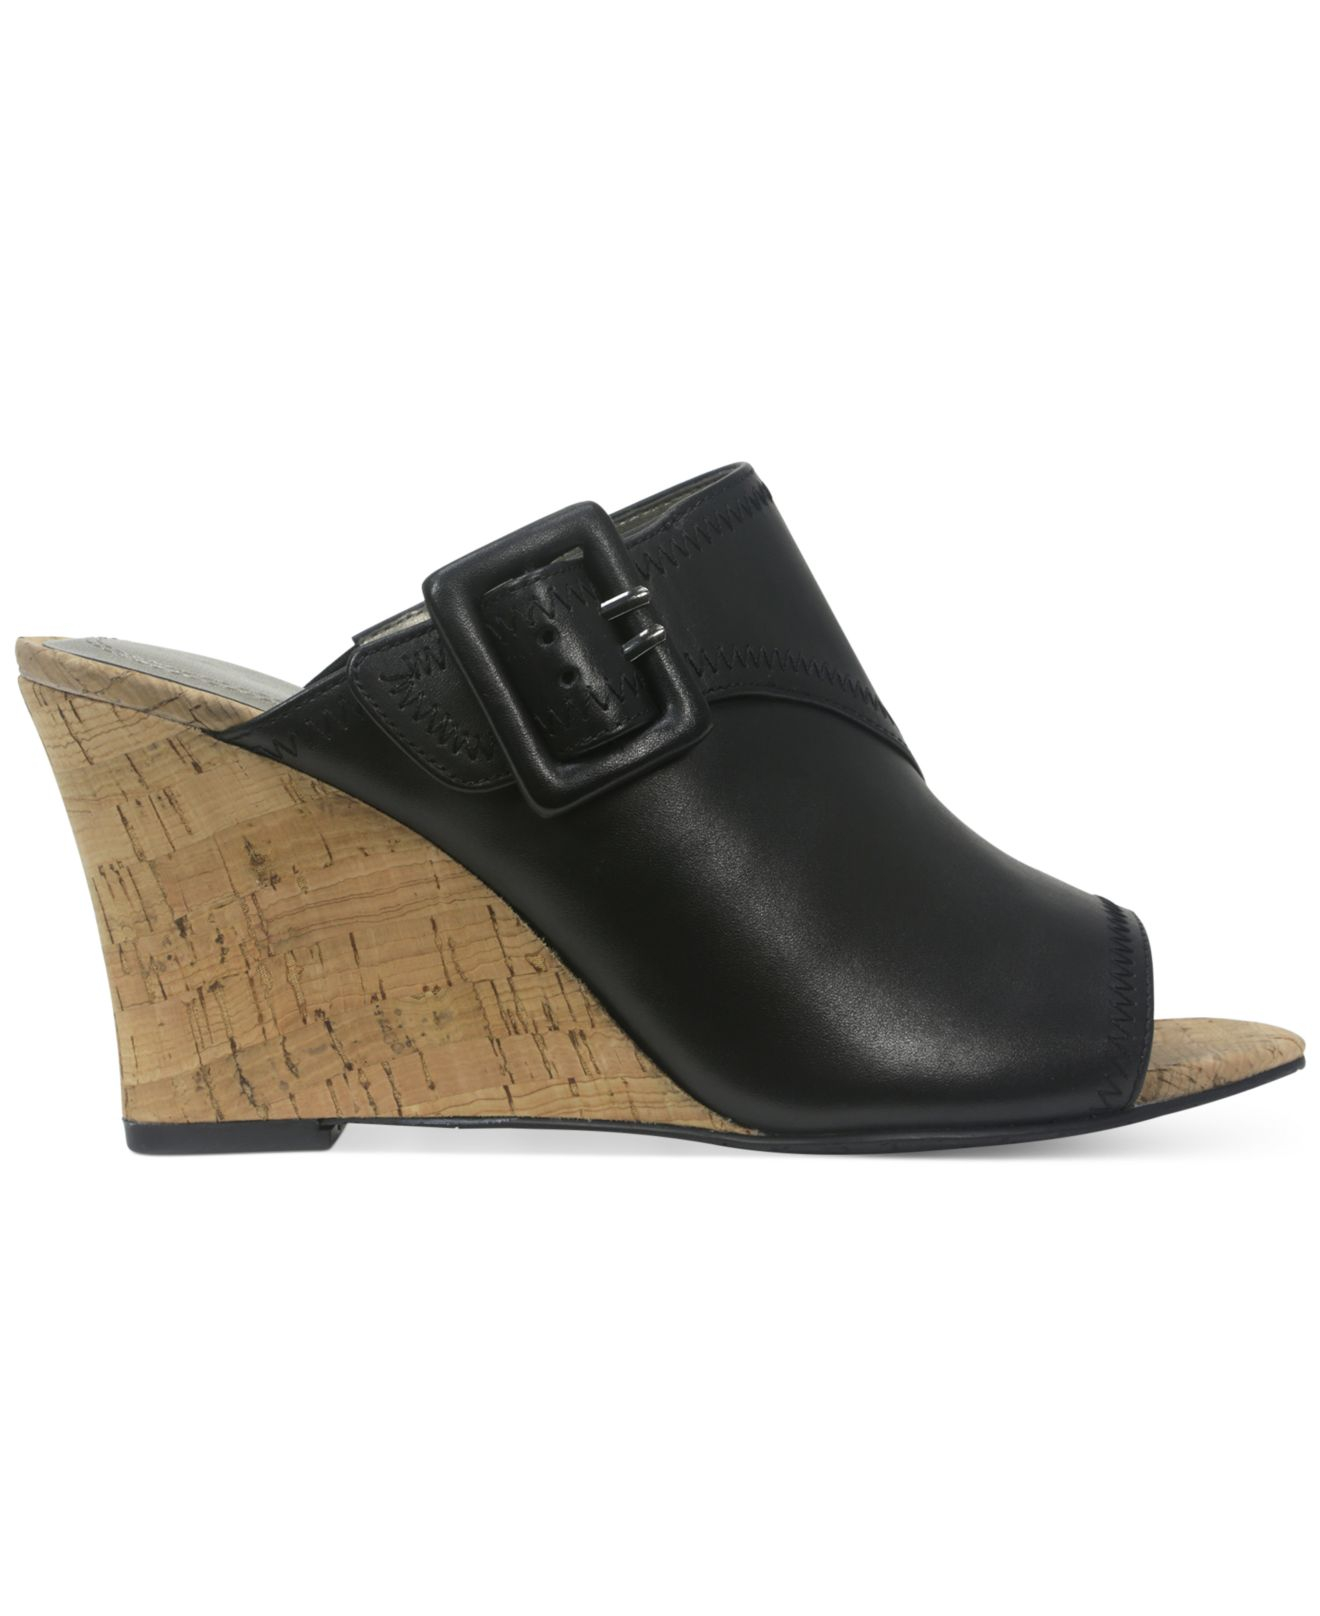 Shoes. With shoes for men, women, and children all in one place, shoe shopping just got a lot more convenient. At Belk, you will be thrilled with the selection of shoes for every occasion.